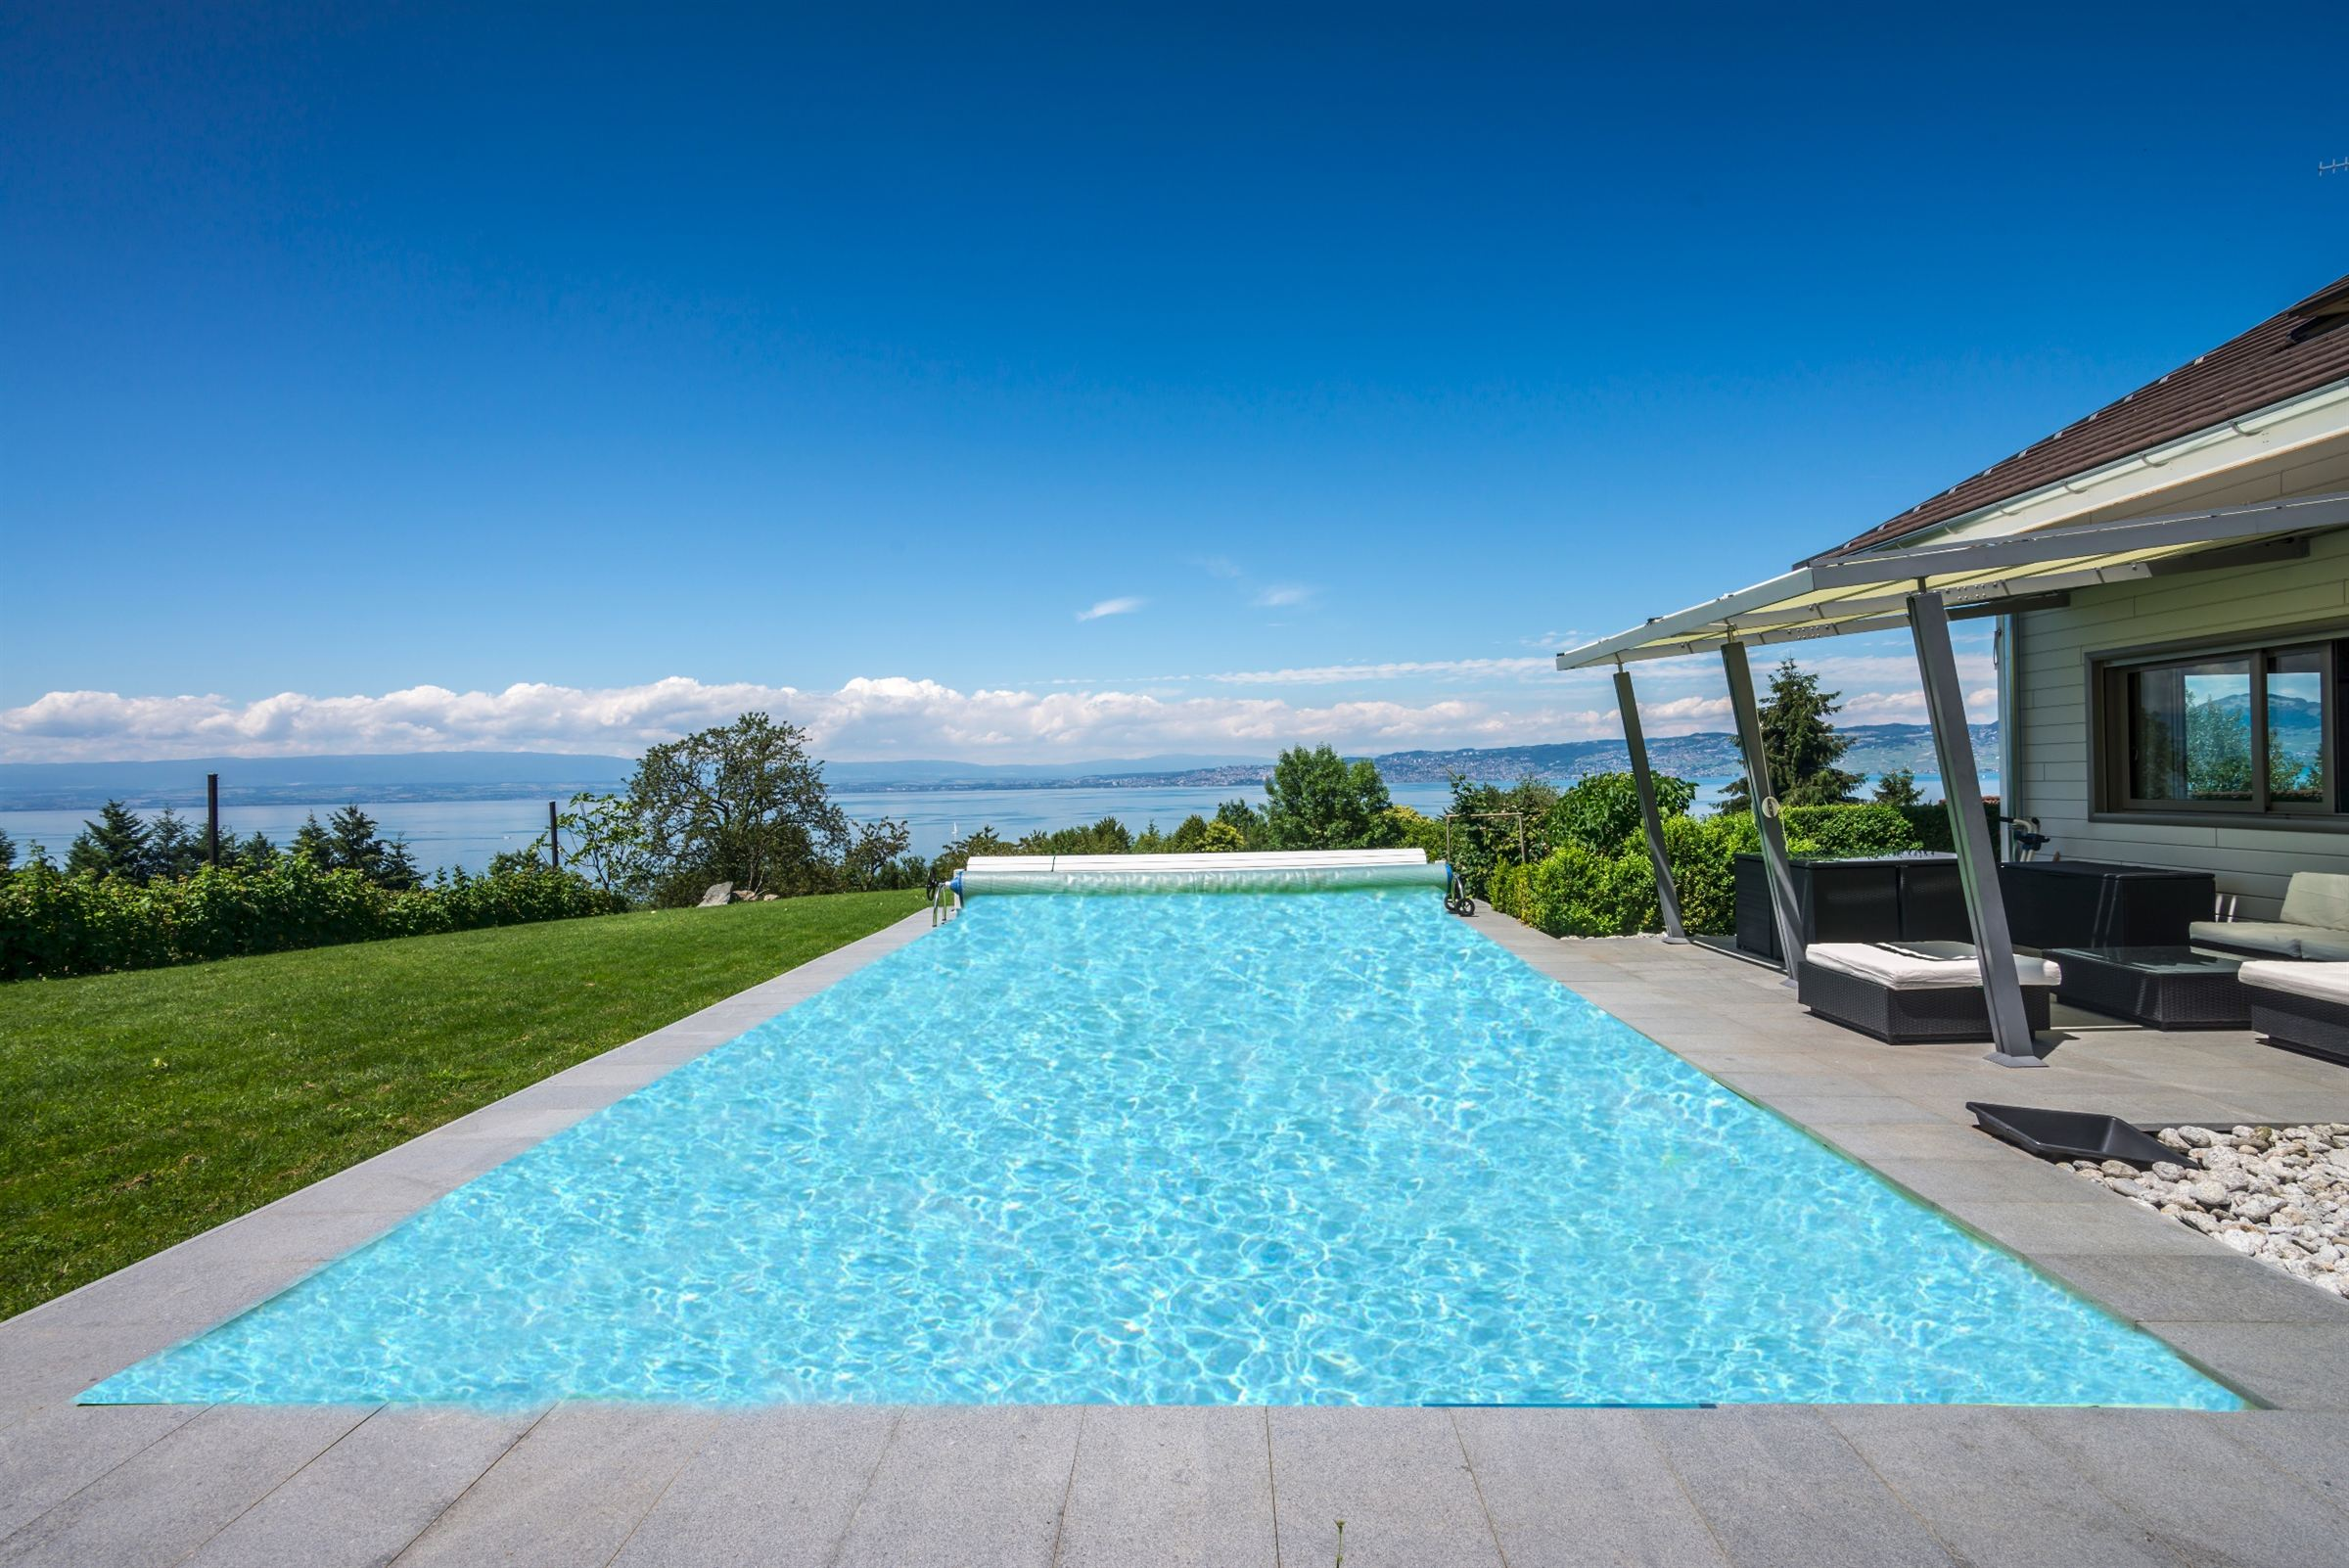 Single Family Home for Sale at LUGRIN MODERN HOUSE WITH VIEW ON THE LAKE Lugrin, Rhone-Alpes, 74500 France